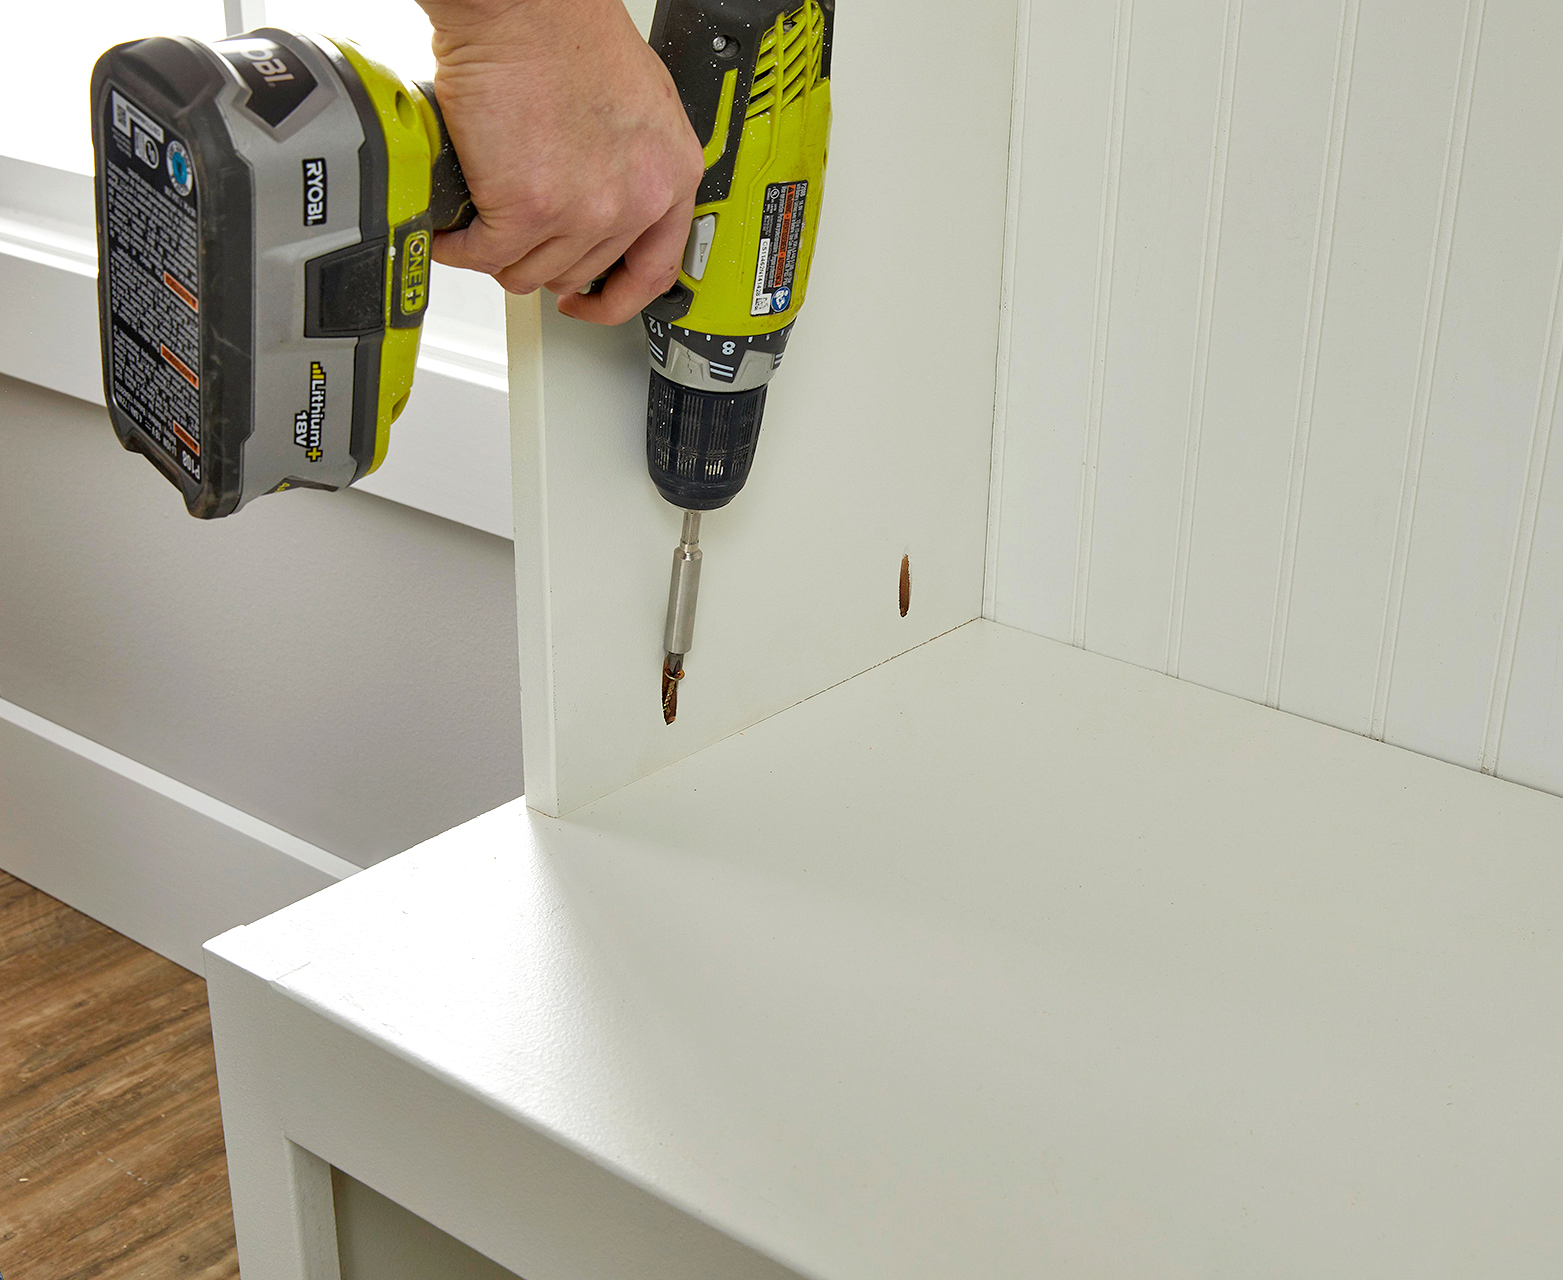 attach side of unit with screwdriver